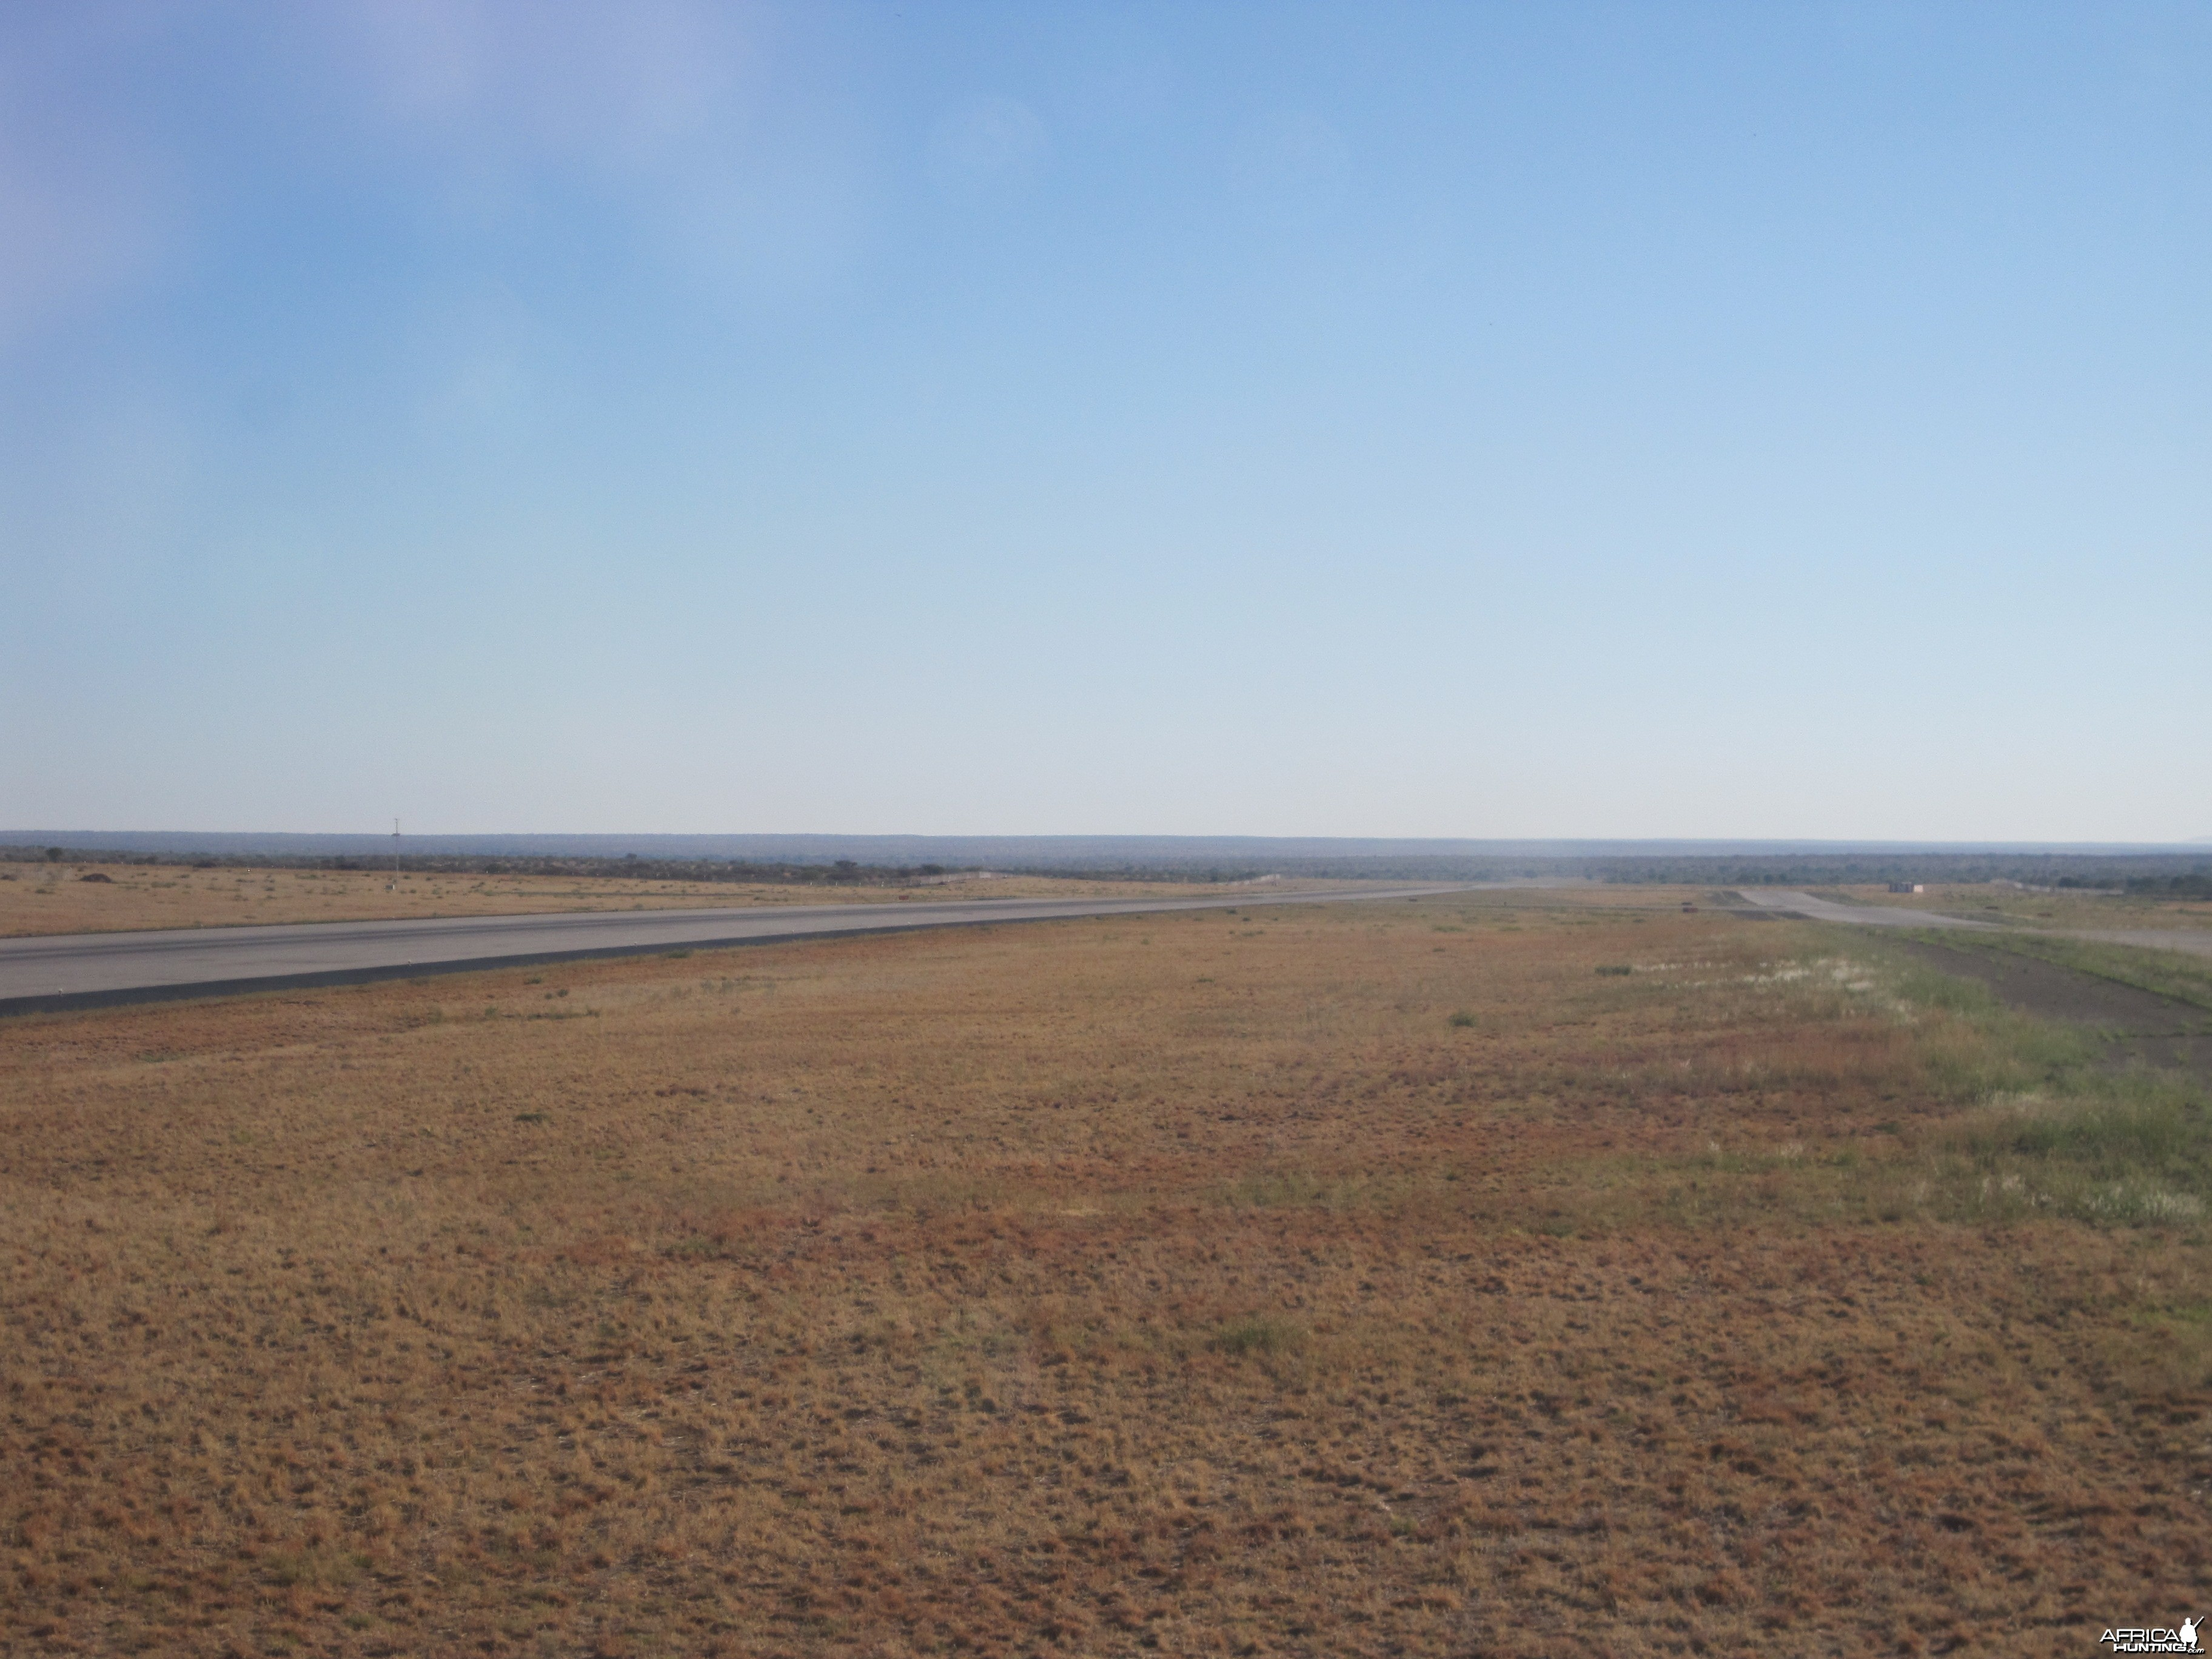 Runway at the International Airport in Windhoek, Namibia